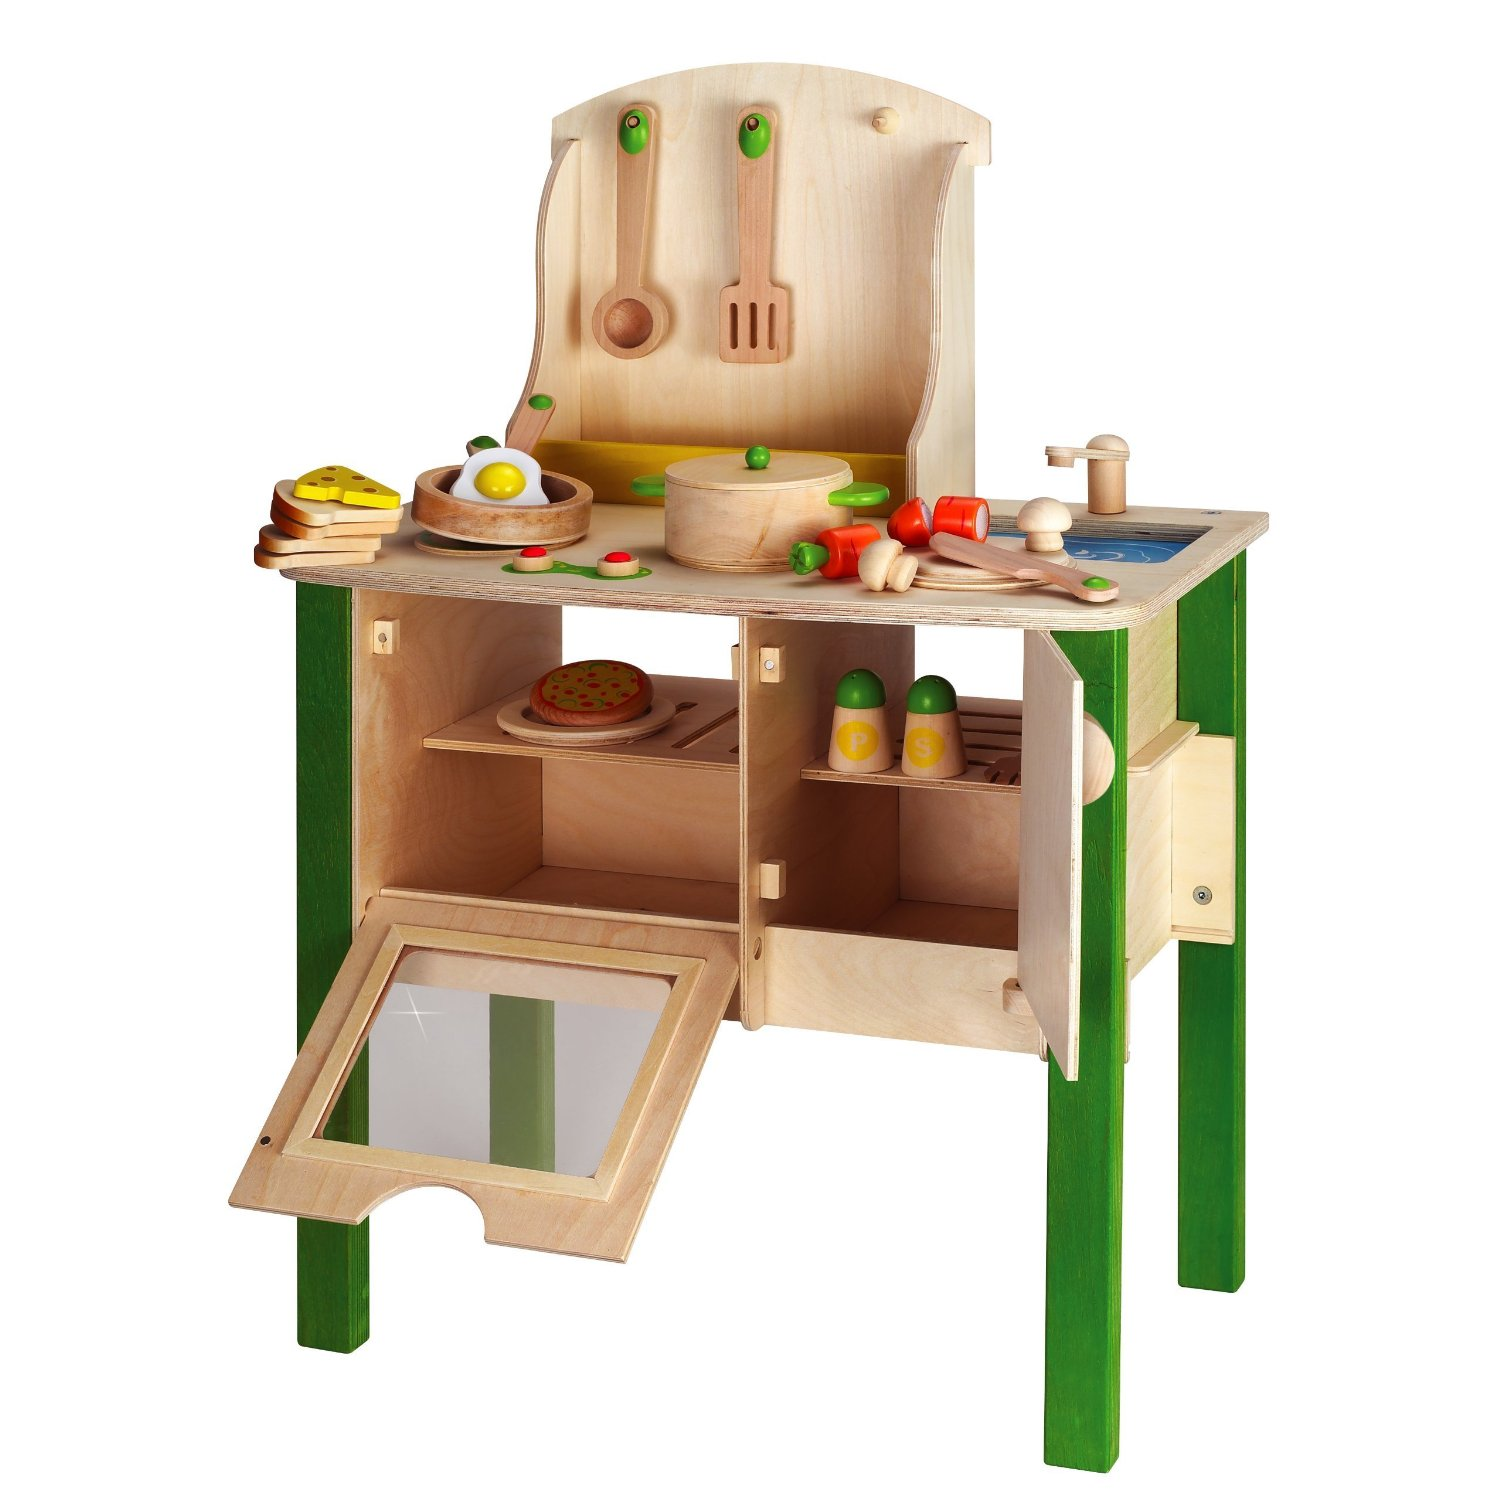 Kitchen set reviews for Toddler kitchen set